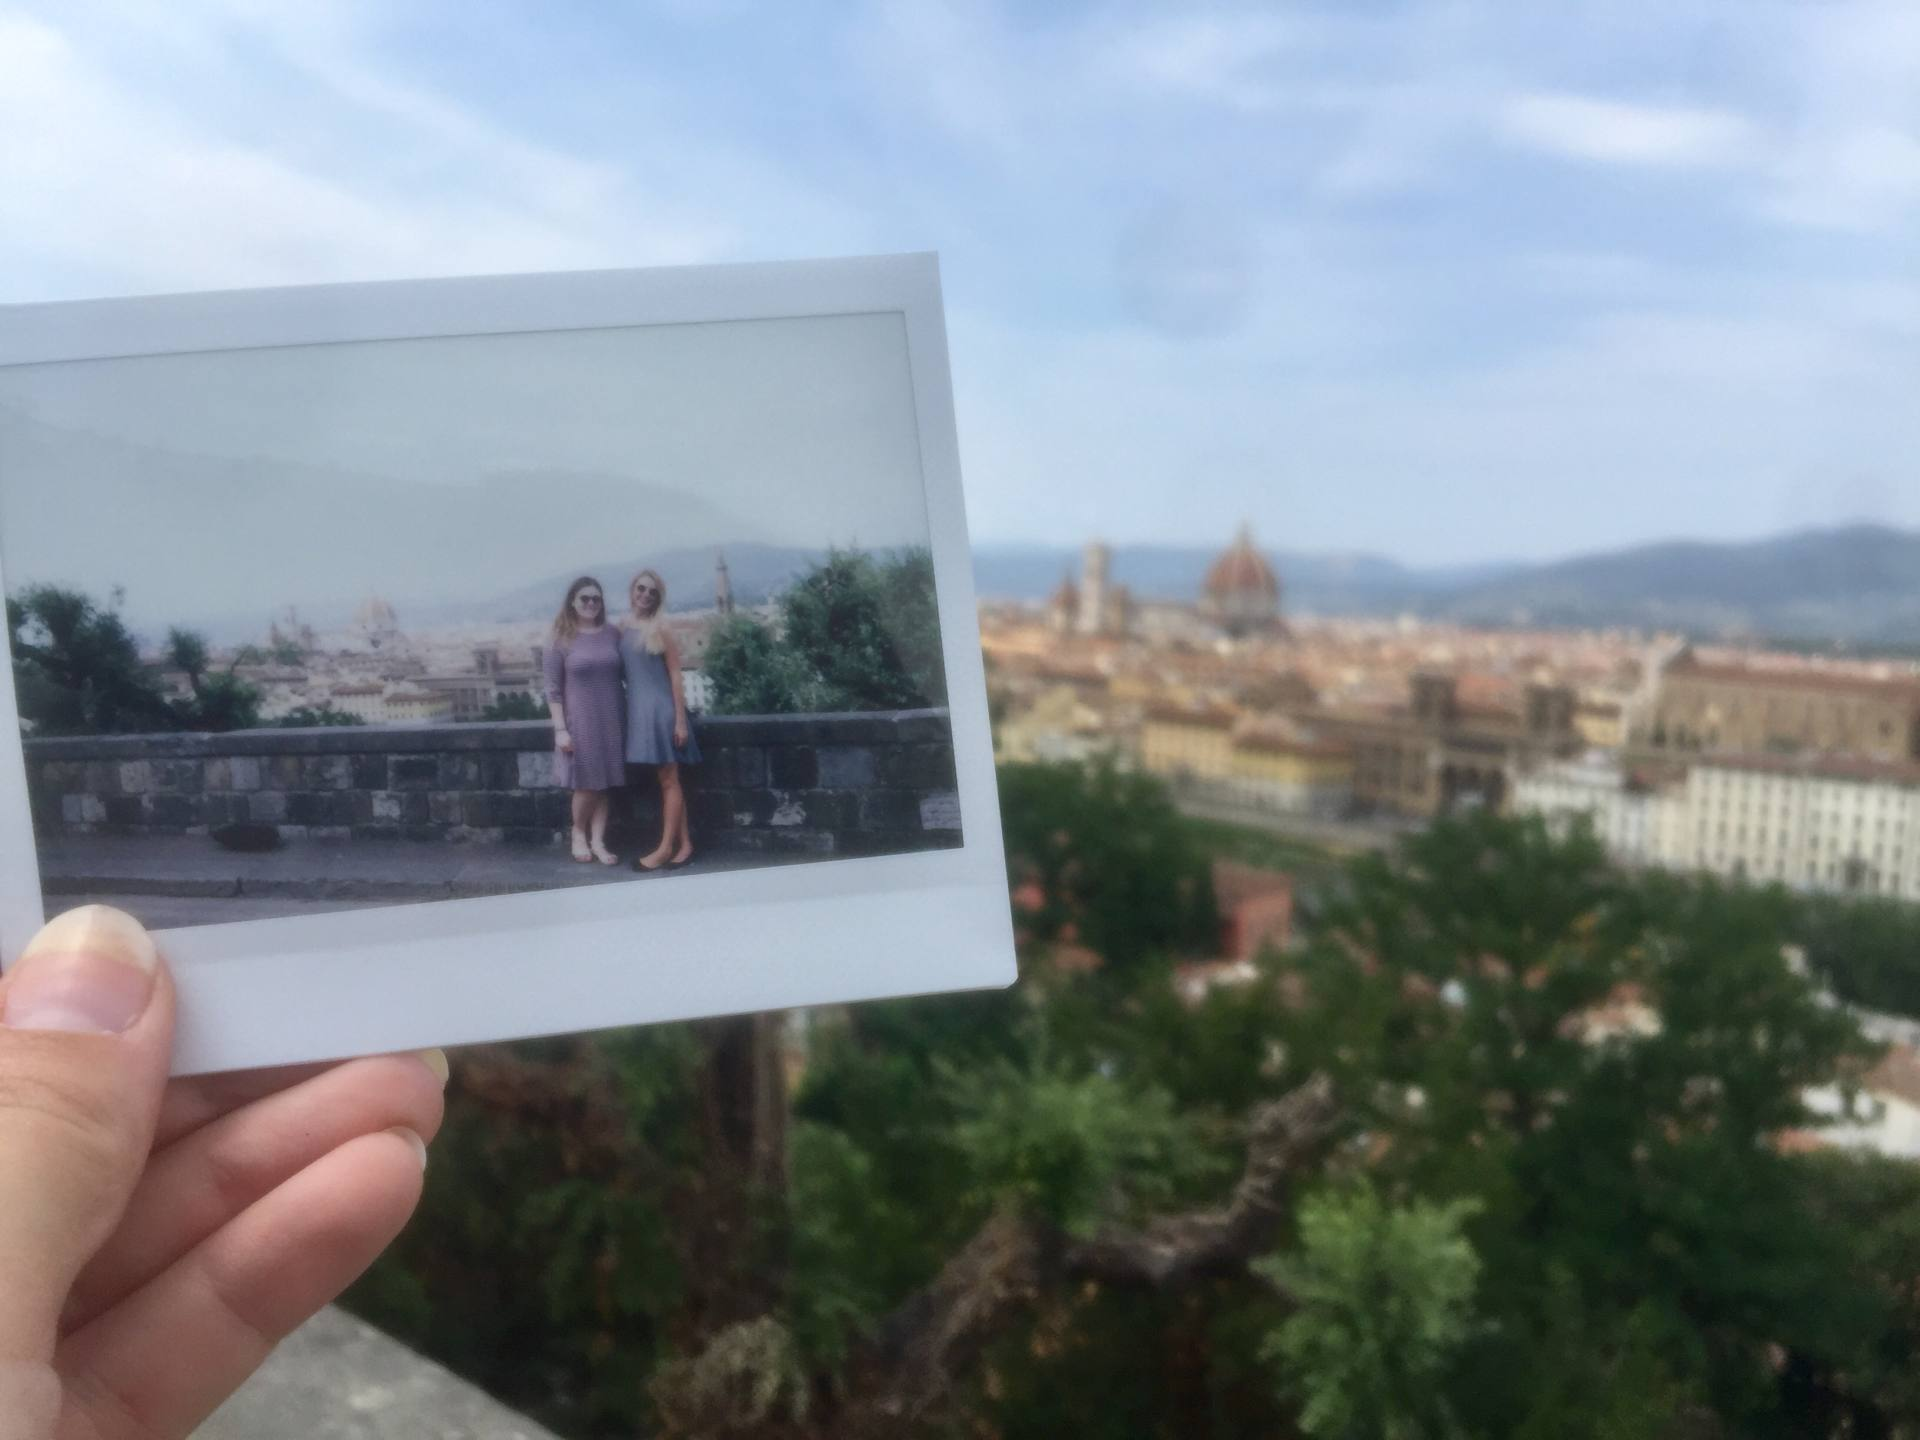 polaroid cameras are great christmas gifts for travelers